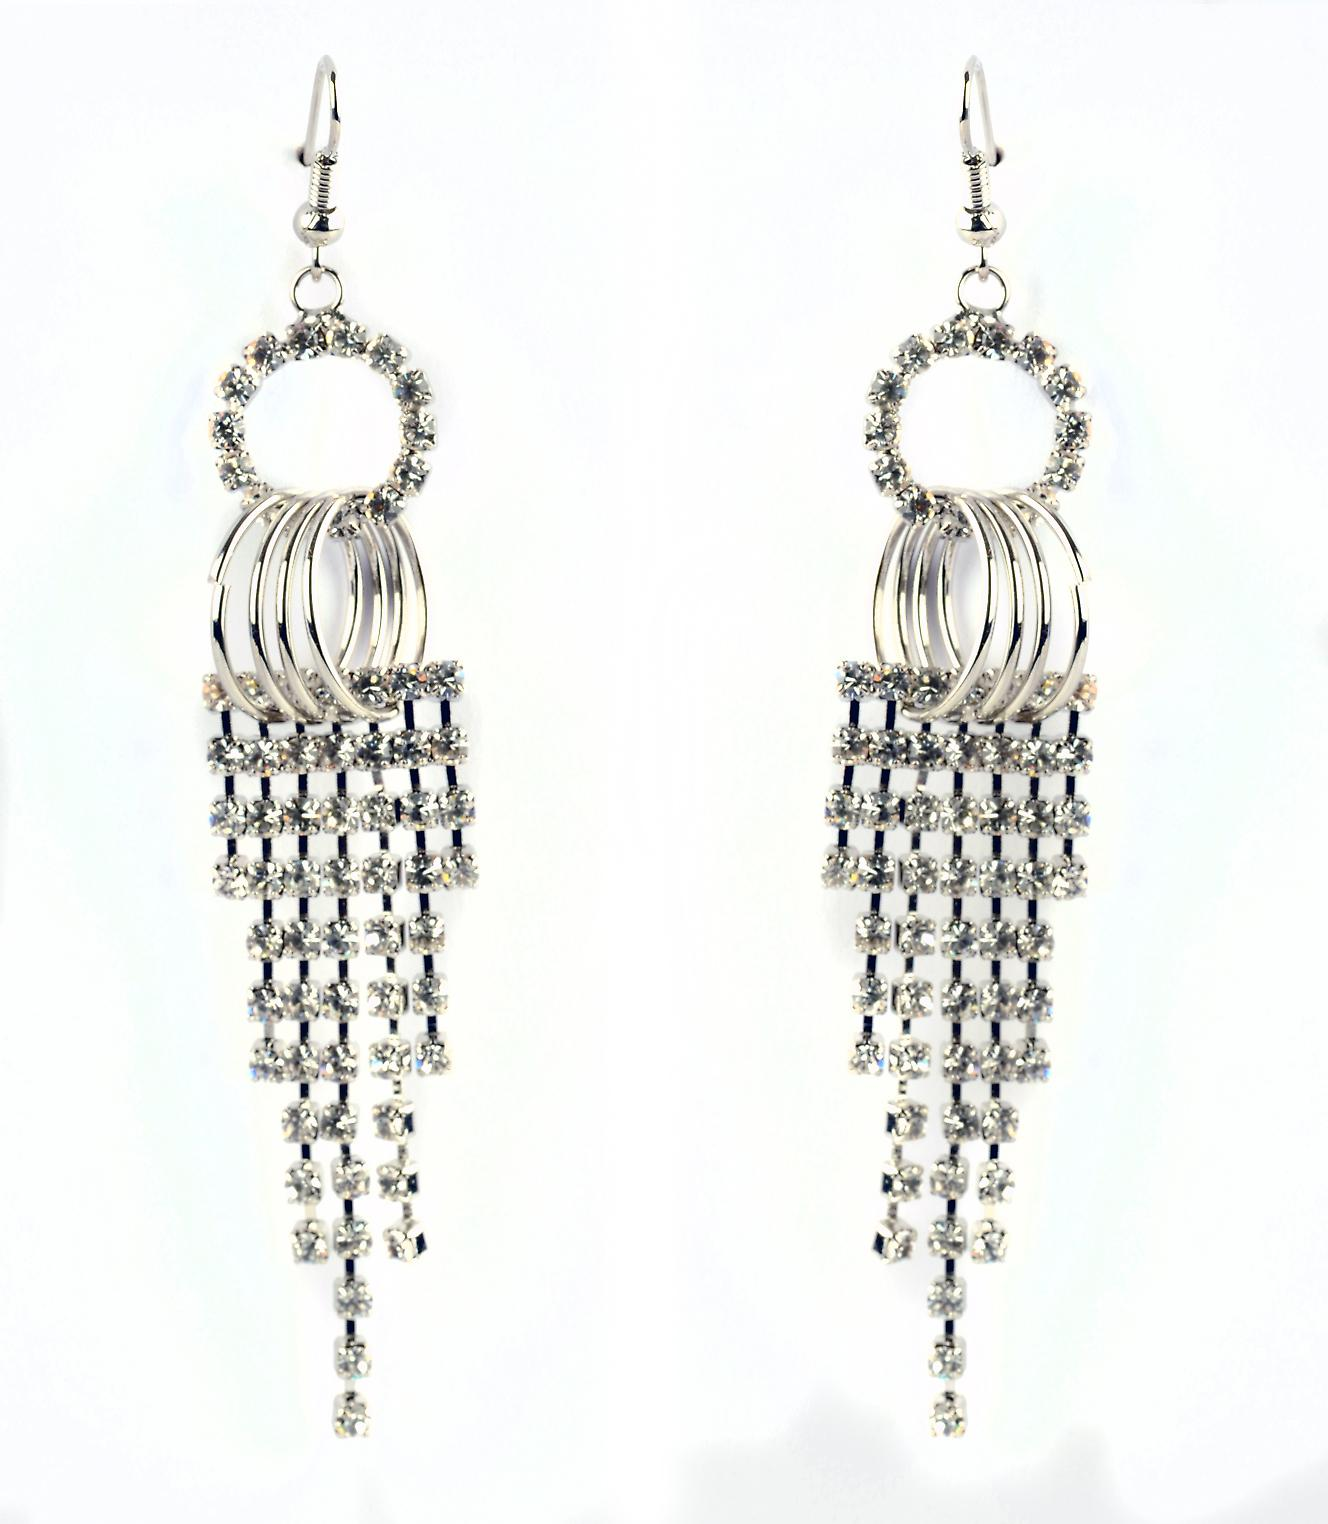 Waooh - Fashion Jewellery - WJ0737 - D'Oreille Strass Swarovski Earrings with White Diamond style - Frame Colour Silver